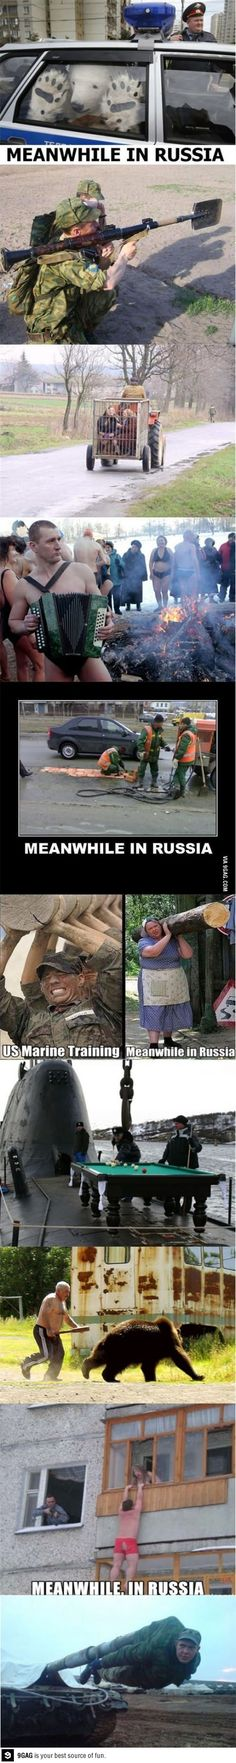 Meanwhile in Russia. Can we gooo ; Really Funny Memes, Stupid Funny Memes, Funny Relatable Memes, Haha Funny, Hilarious, Funny Images, Funny Photos, Military Jokes, Meanwhile In Russia